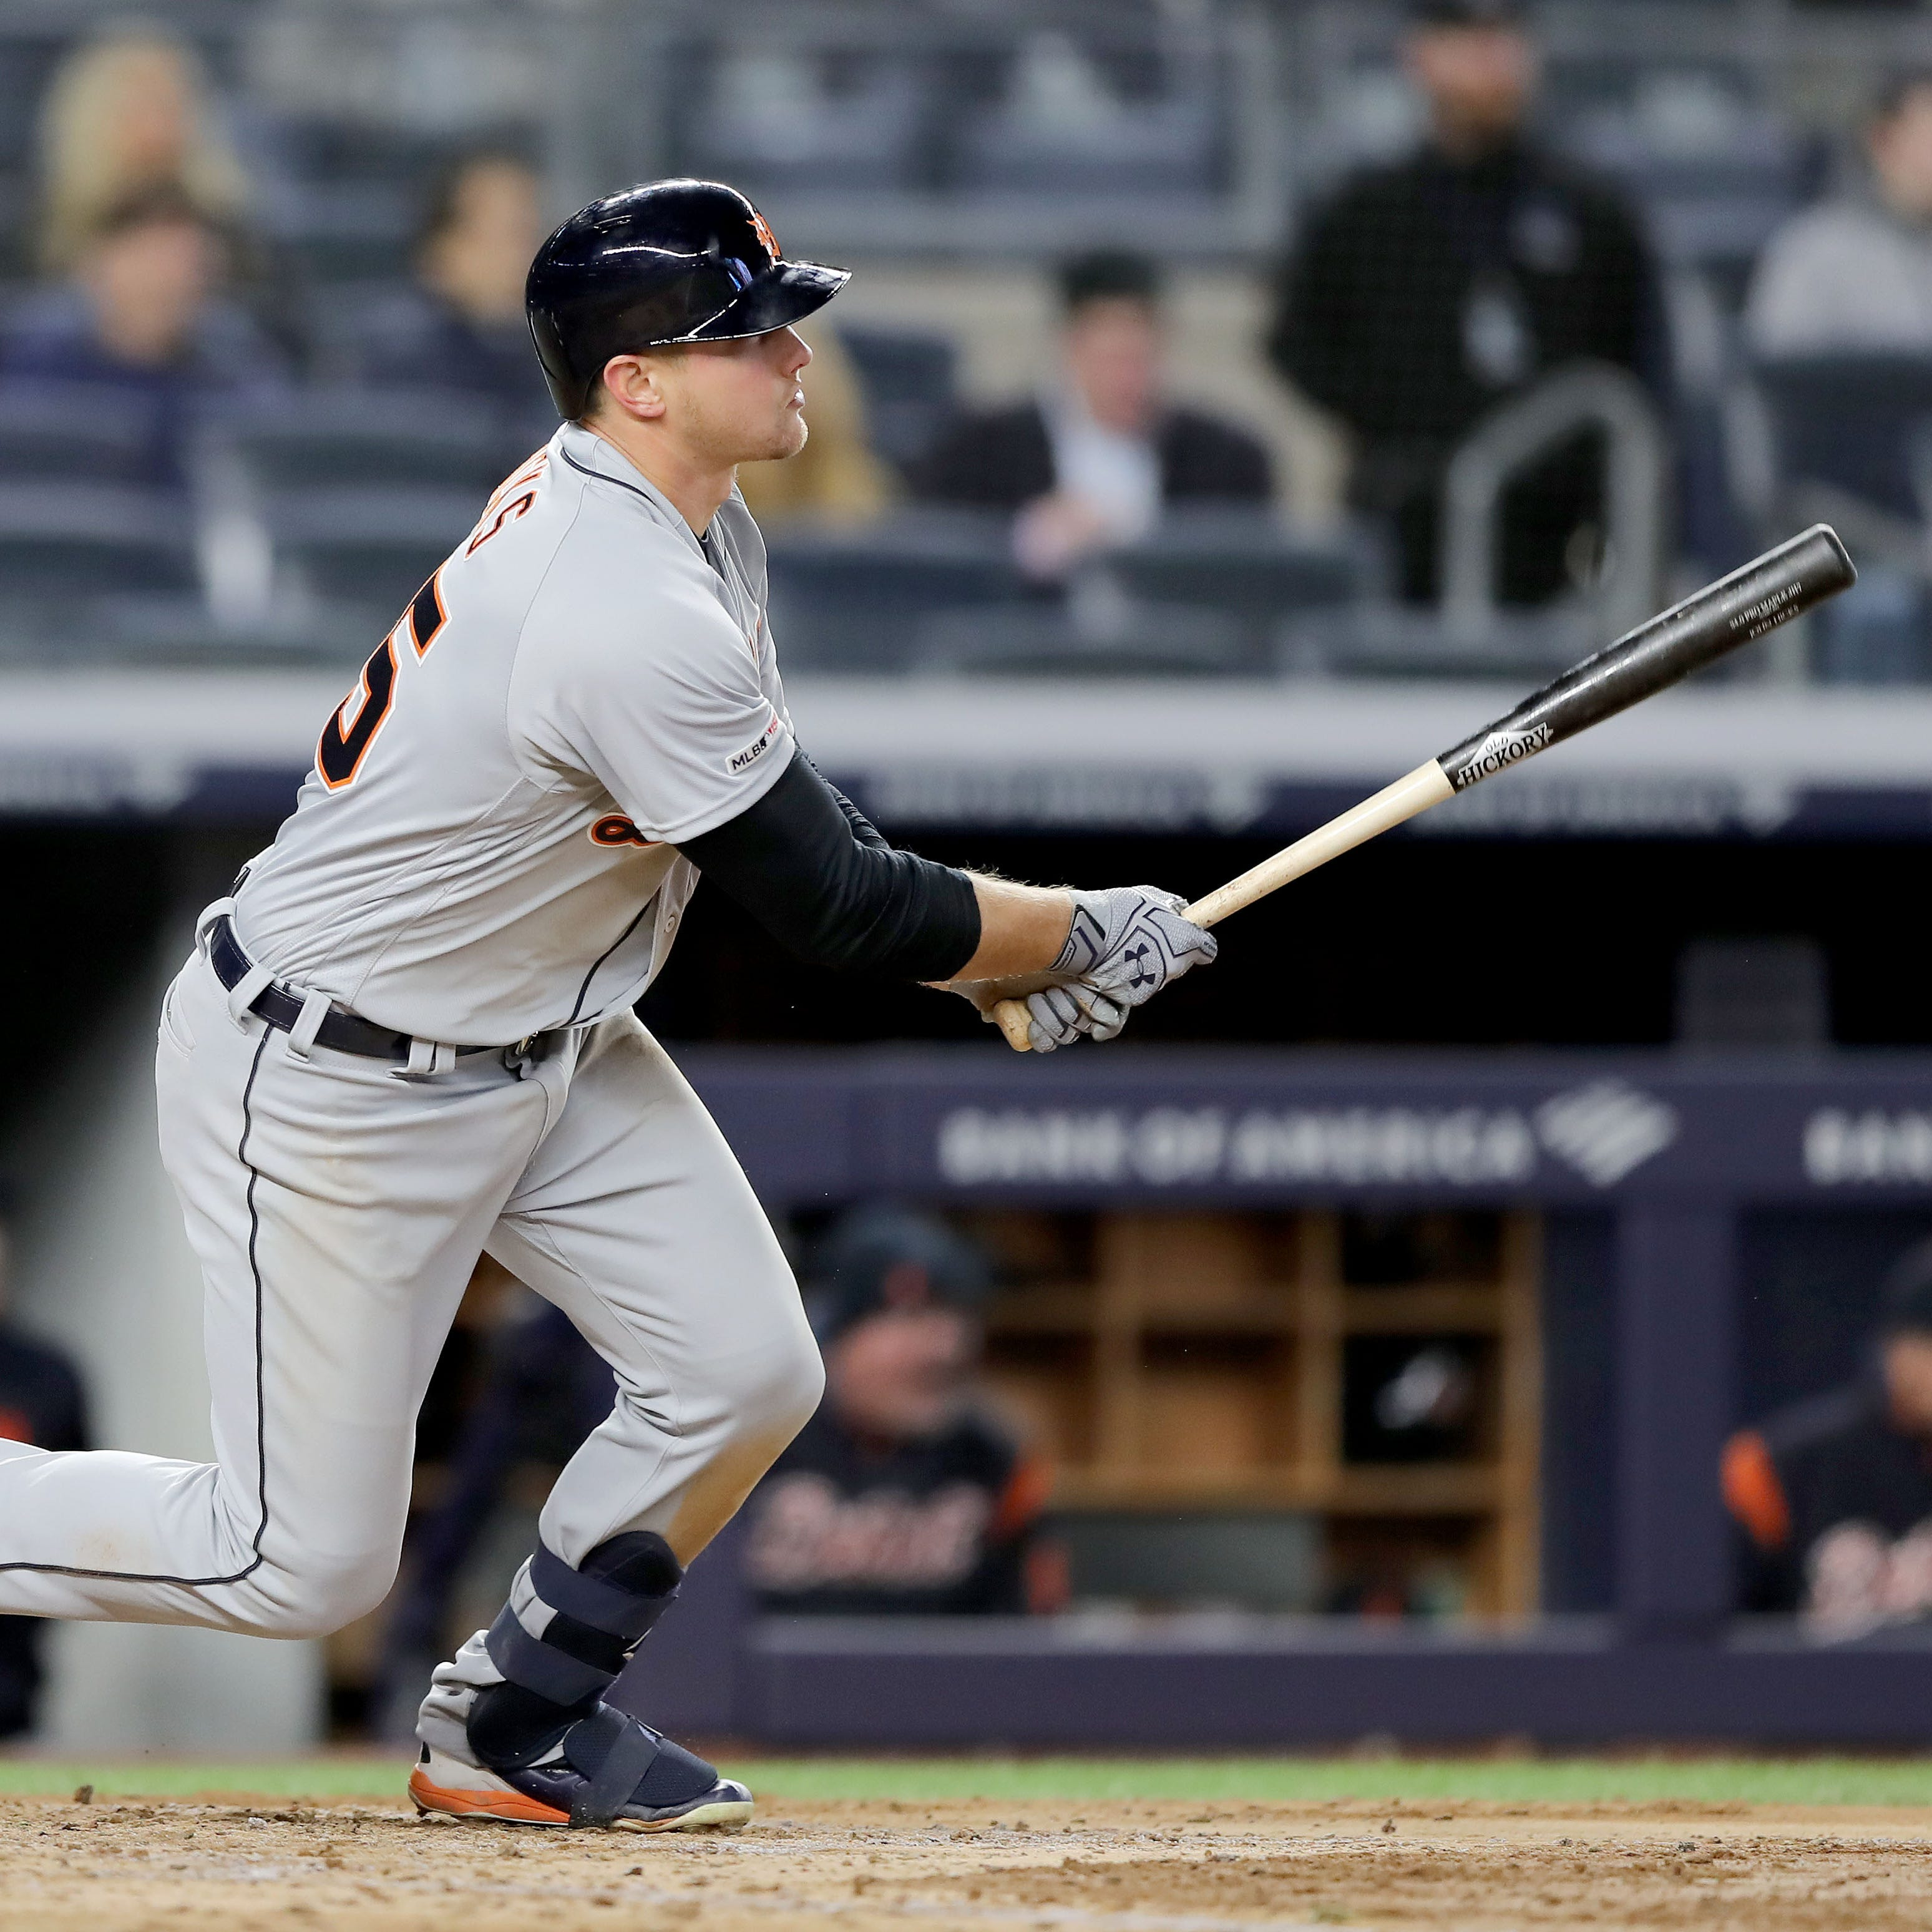 Dustin Peterson's first career hit leads Detroit Tigers past Yankees